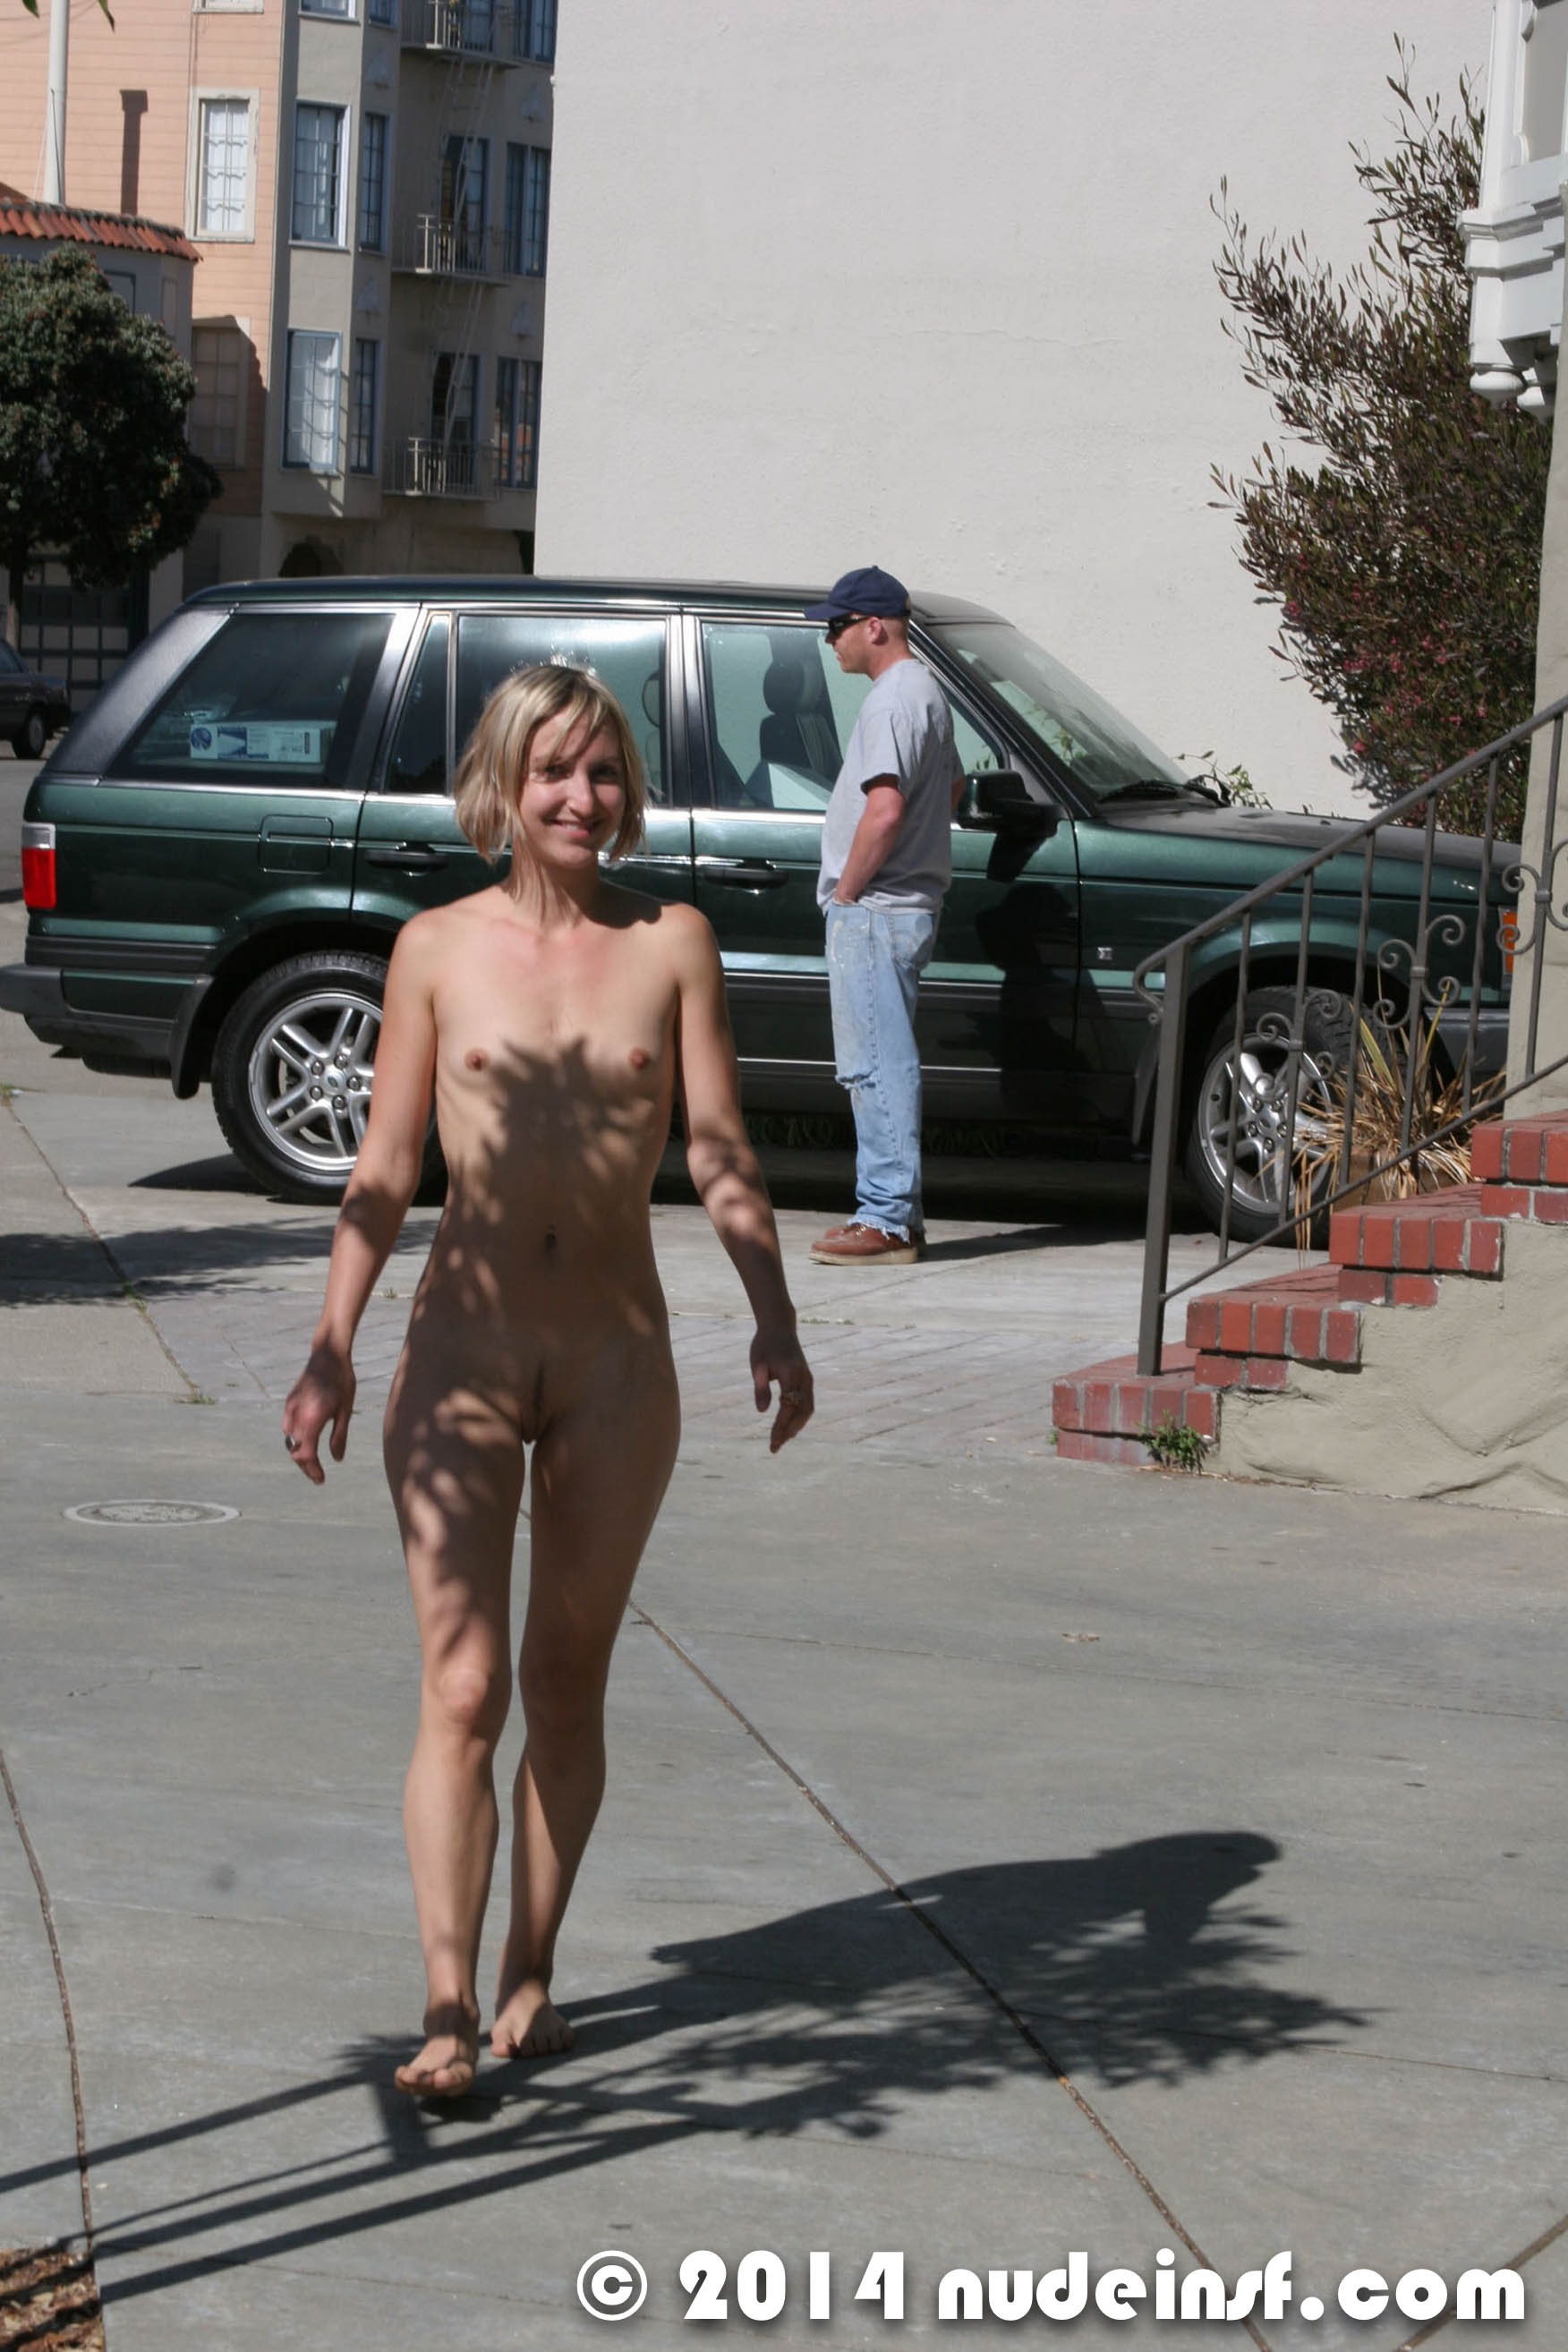 Jenni - Public nudity in San Francisco California